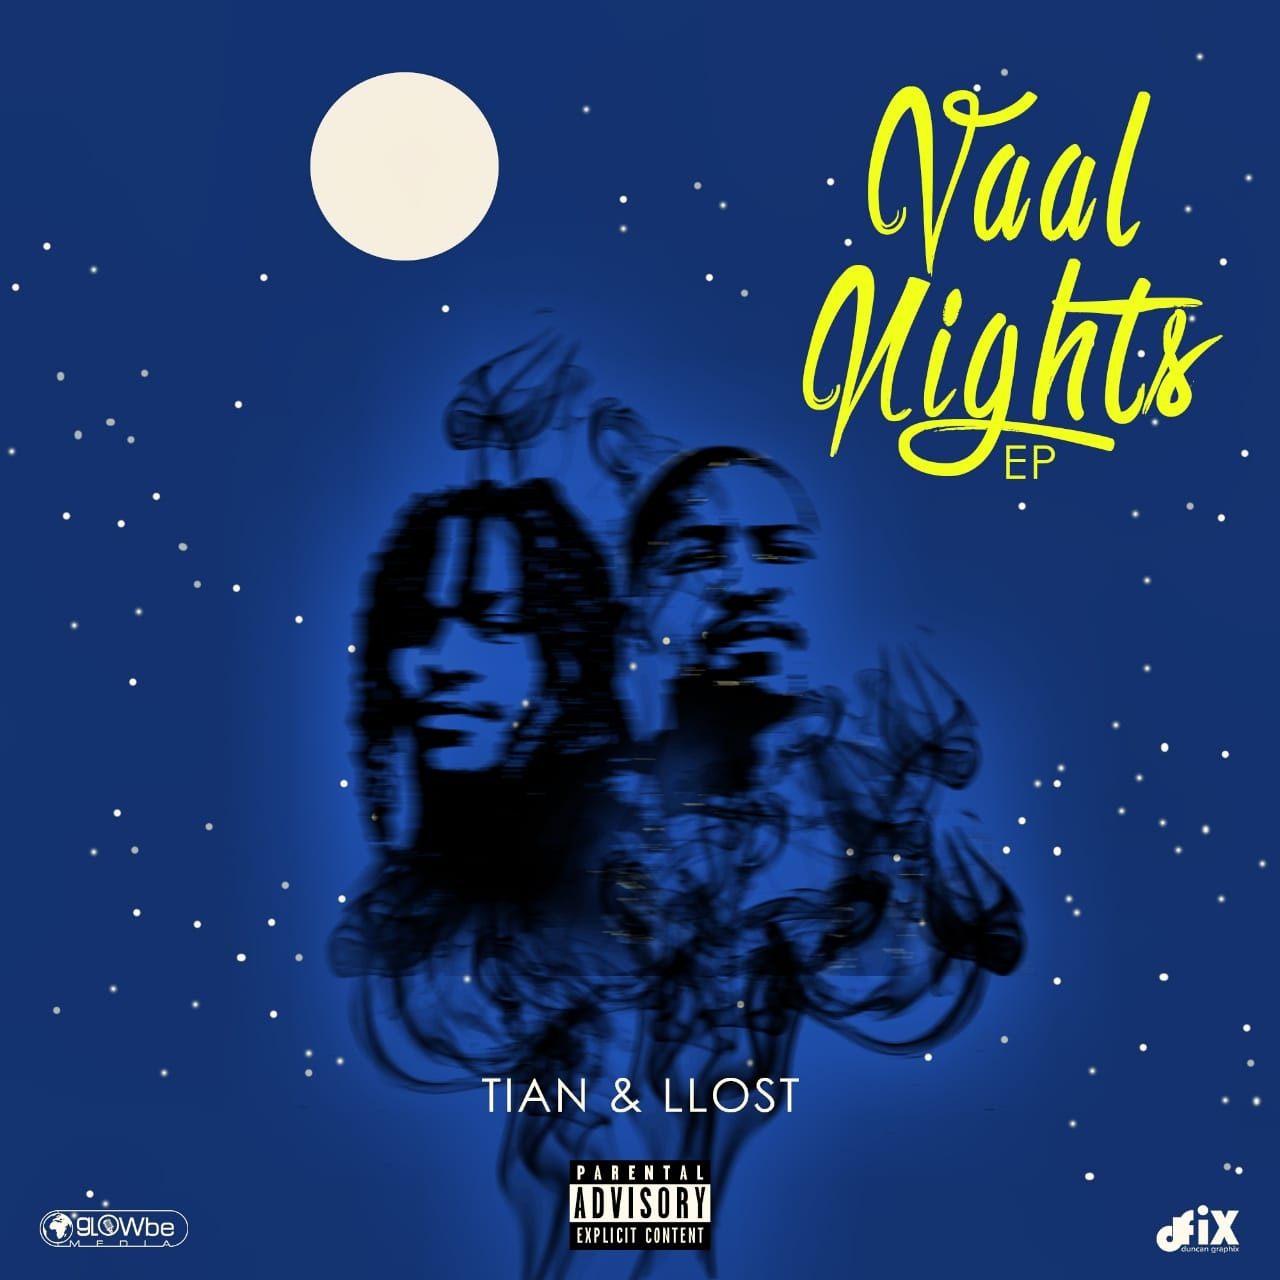 Vaal Nights EP by TiaN x Llost